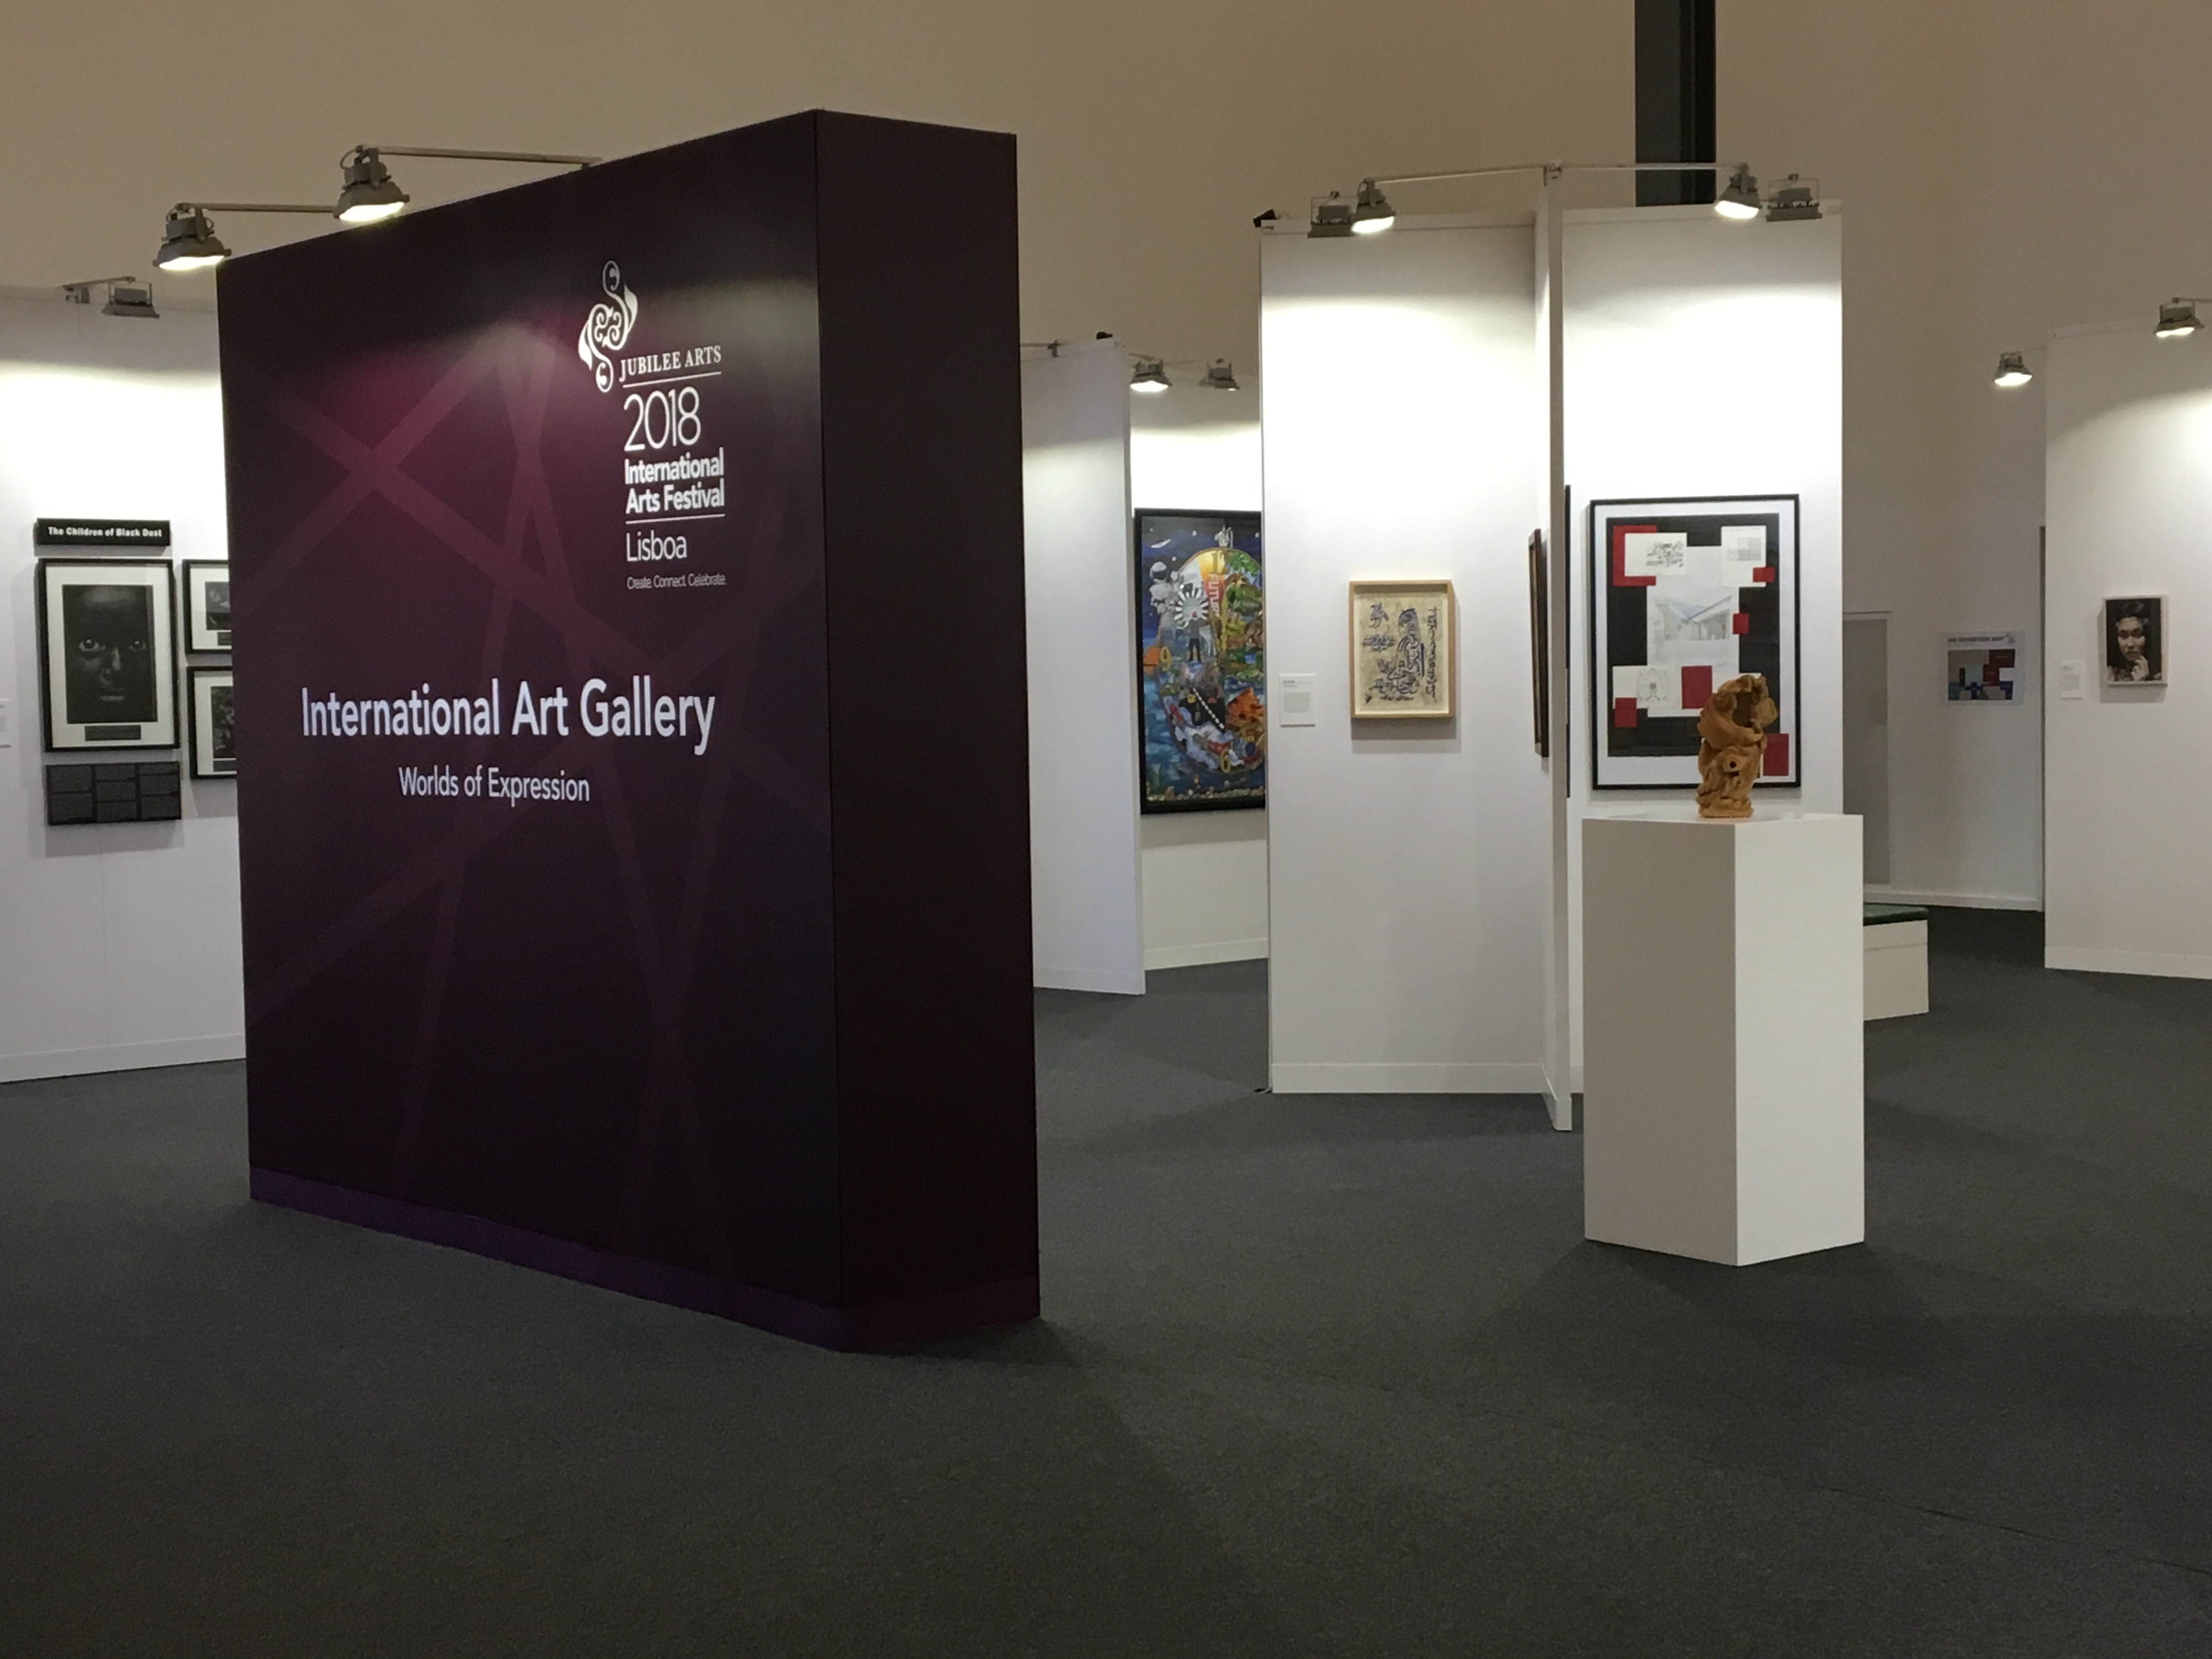 Perspectives on the International Art Gallery at the Aga Khan's Diamond Jubilee Celebrations in Lisbon